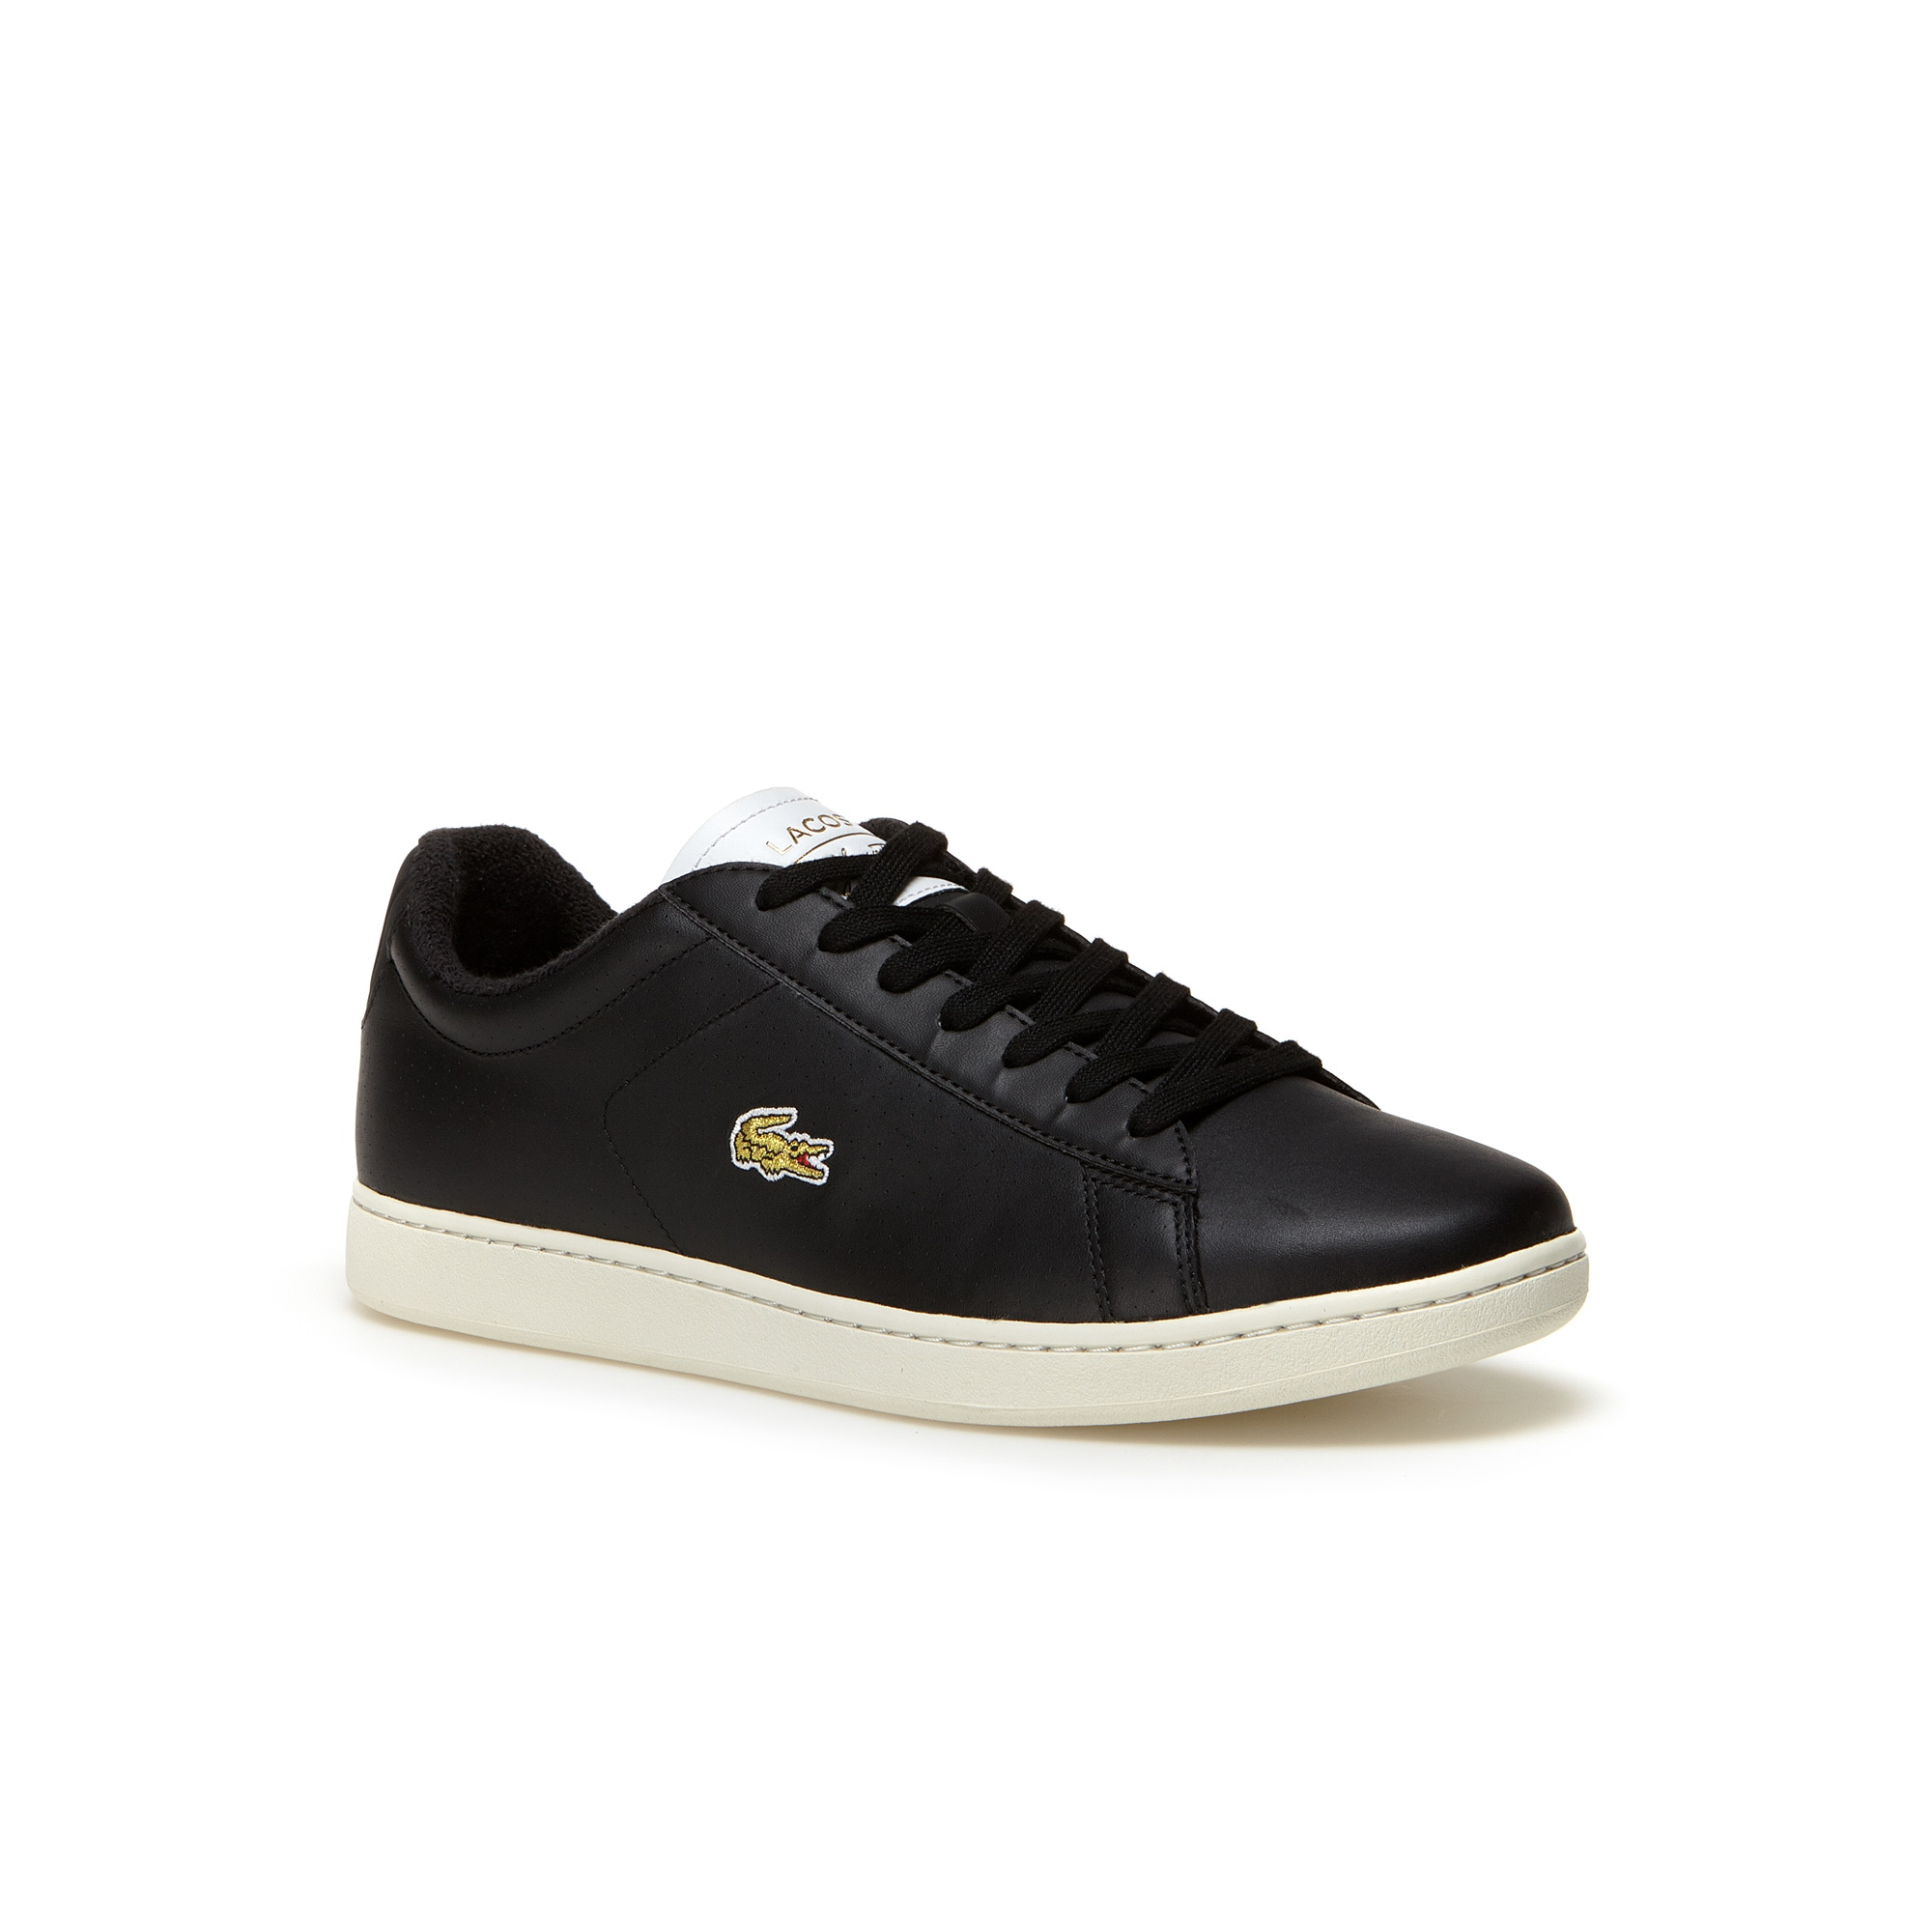 Men's Carnaby Evo Leather Trainers with gold croc